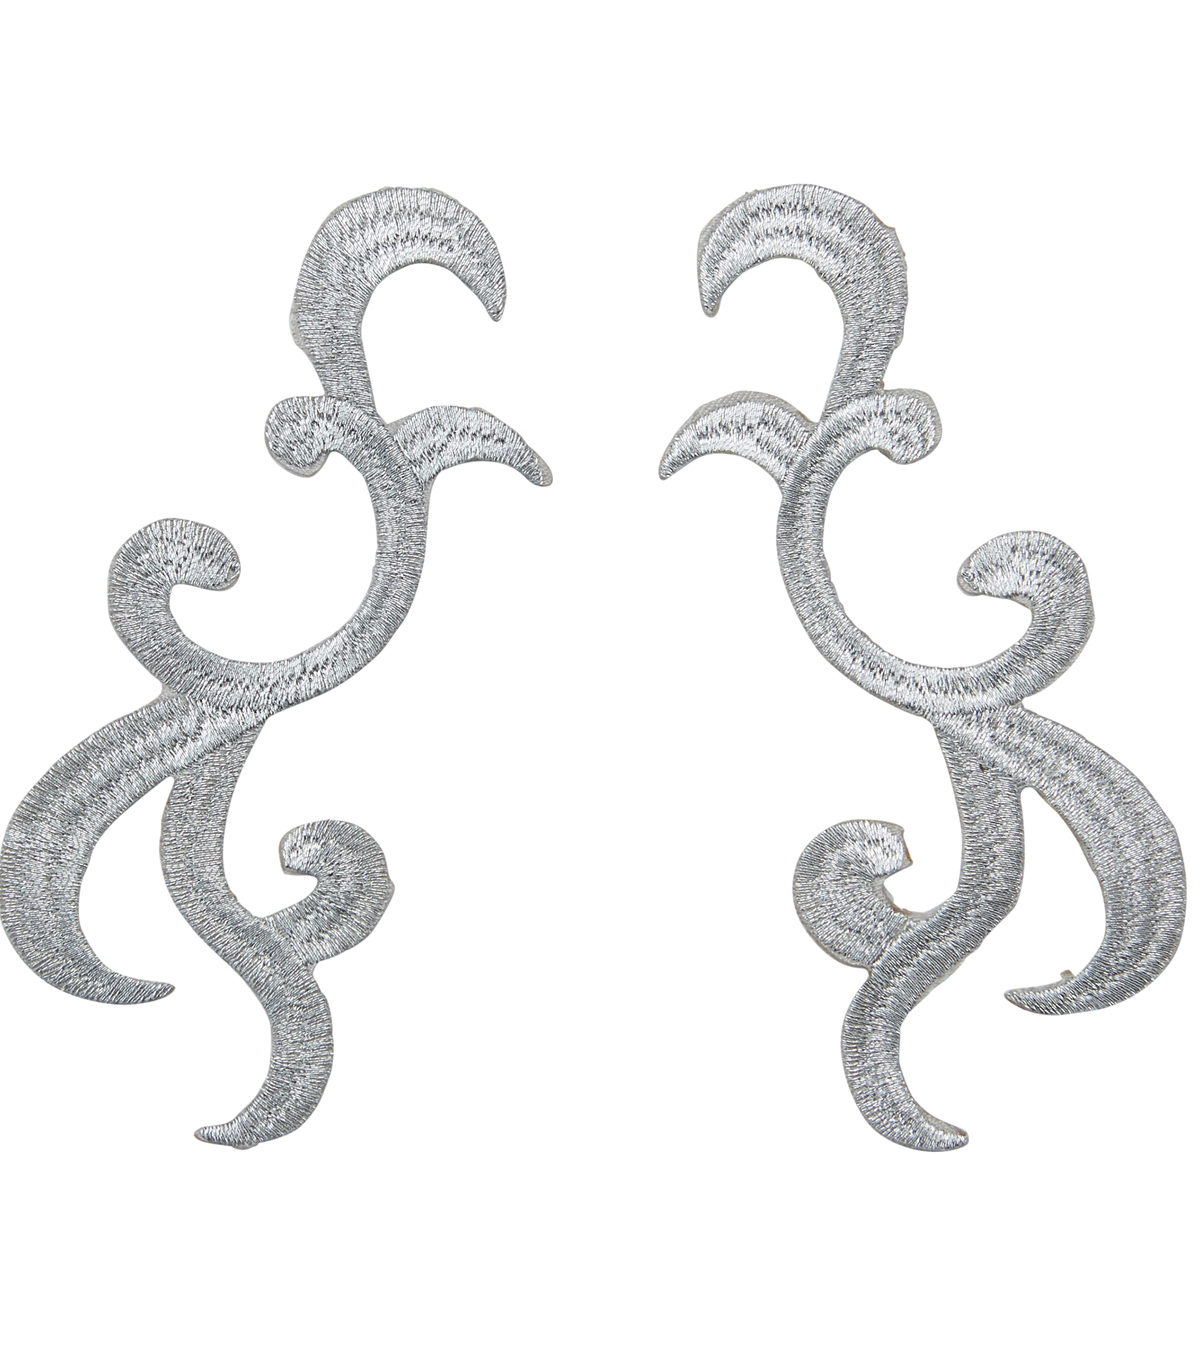 Yaya Han Collection Silver  Swirl Cosplay Applique